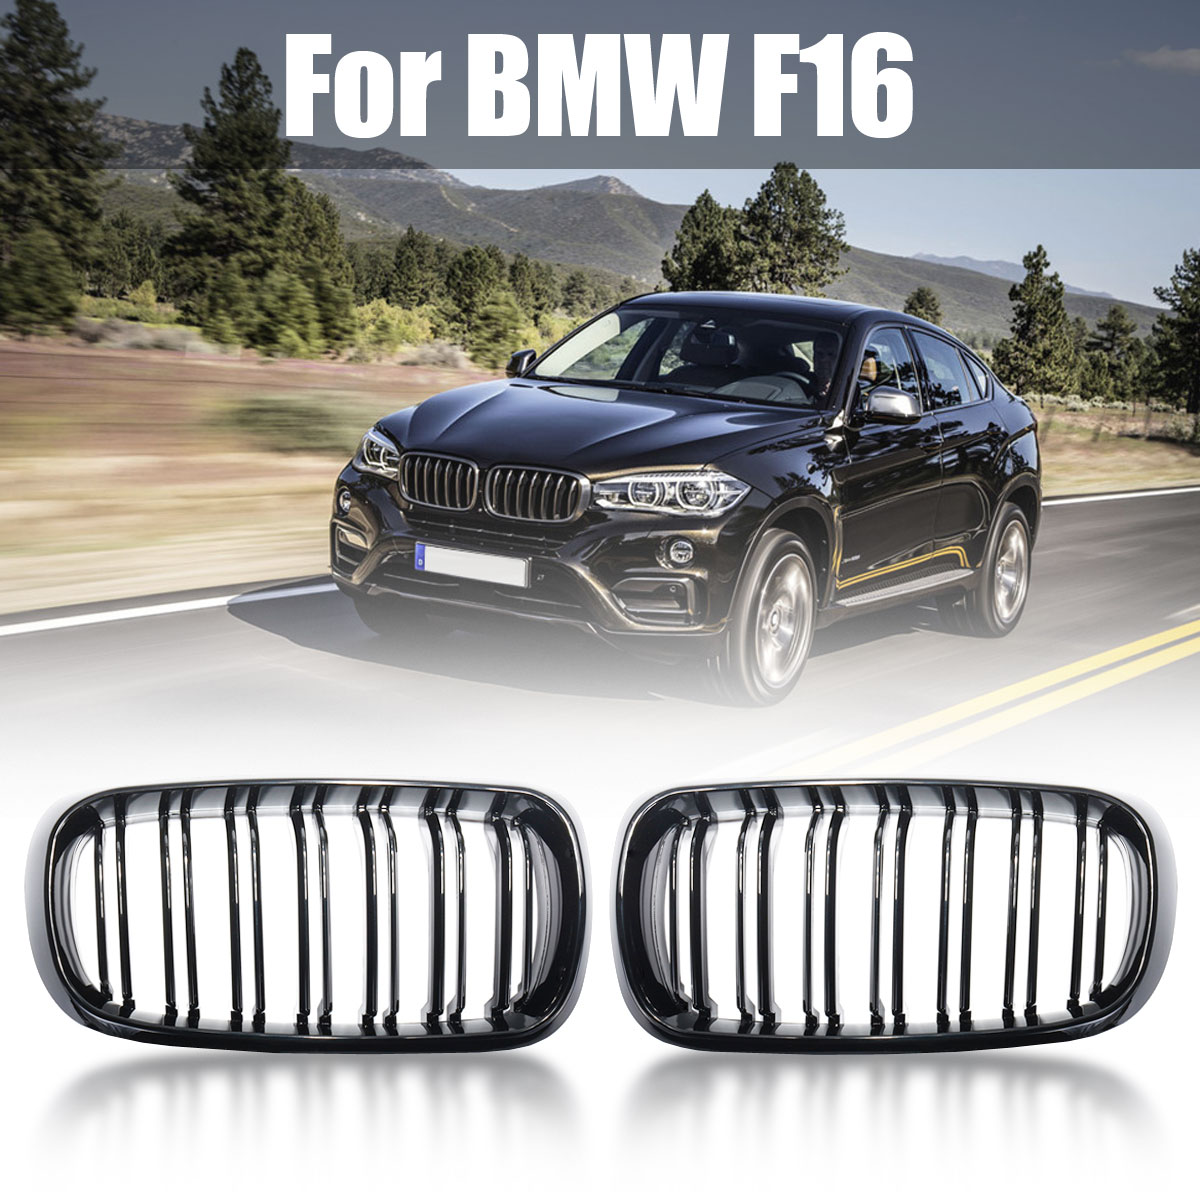 1 Pair New ABS Replacement Gloss/Matte Black 2 Double Slat Line Front Kidney Sport Grill Grille For BMW F15 F16 X5 X6 2014-2018 2007 2013 kidney shape matte black abs plastic e70 e71 original style x5 x6 front racing grill grille for bmw e70 x5 bmw x6